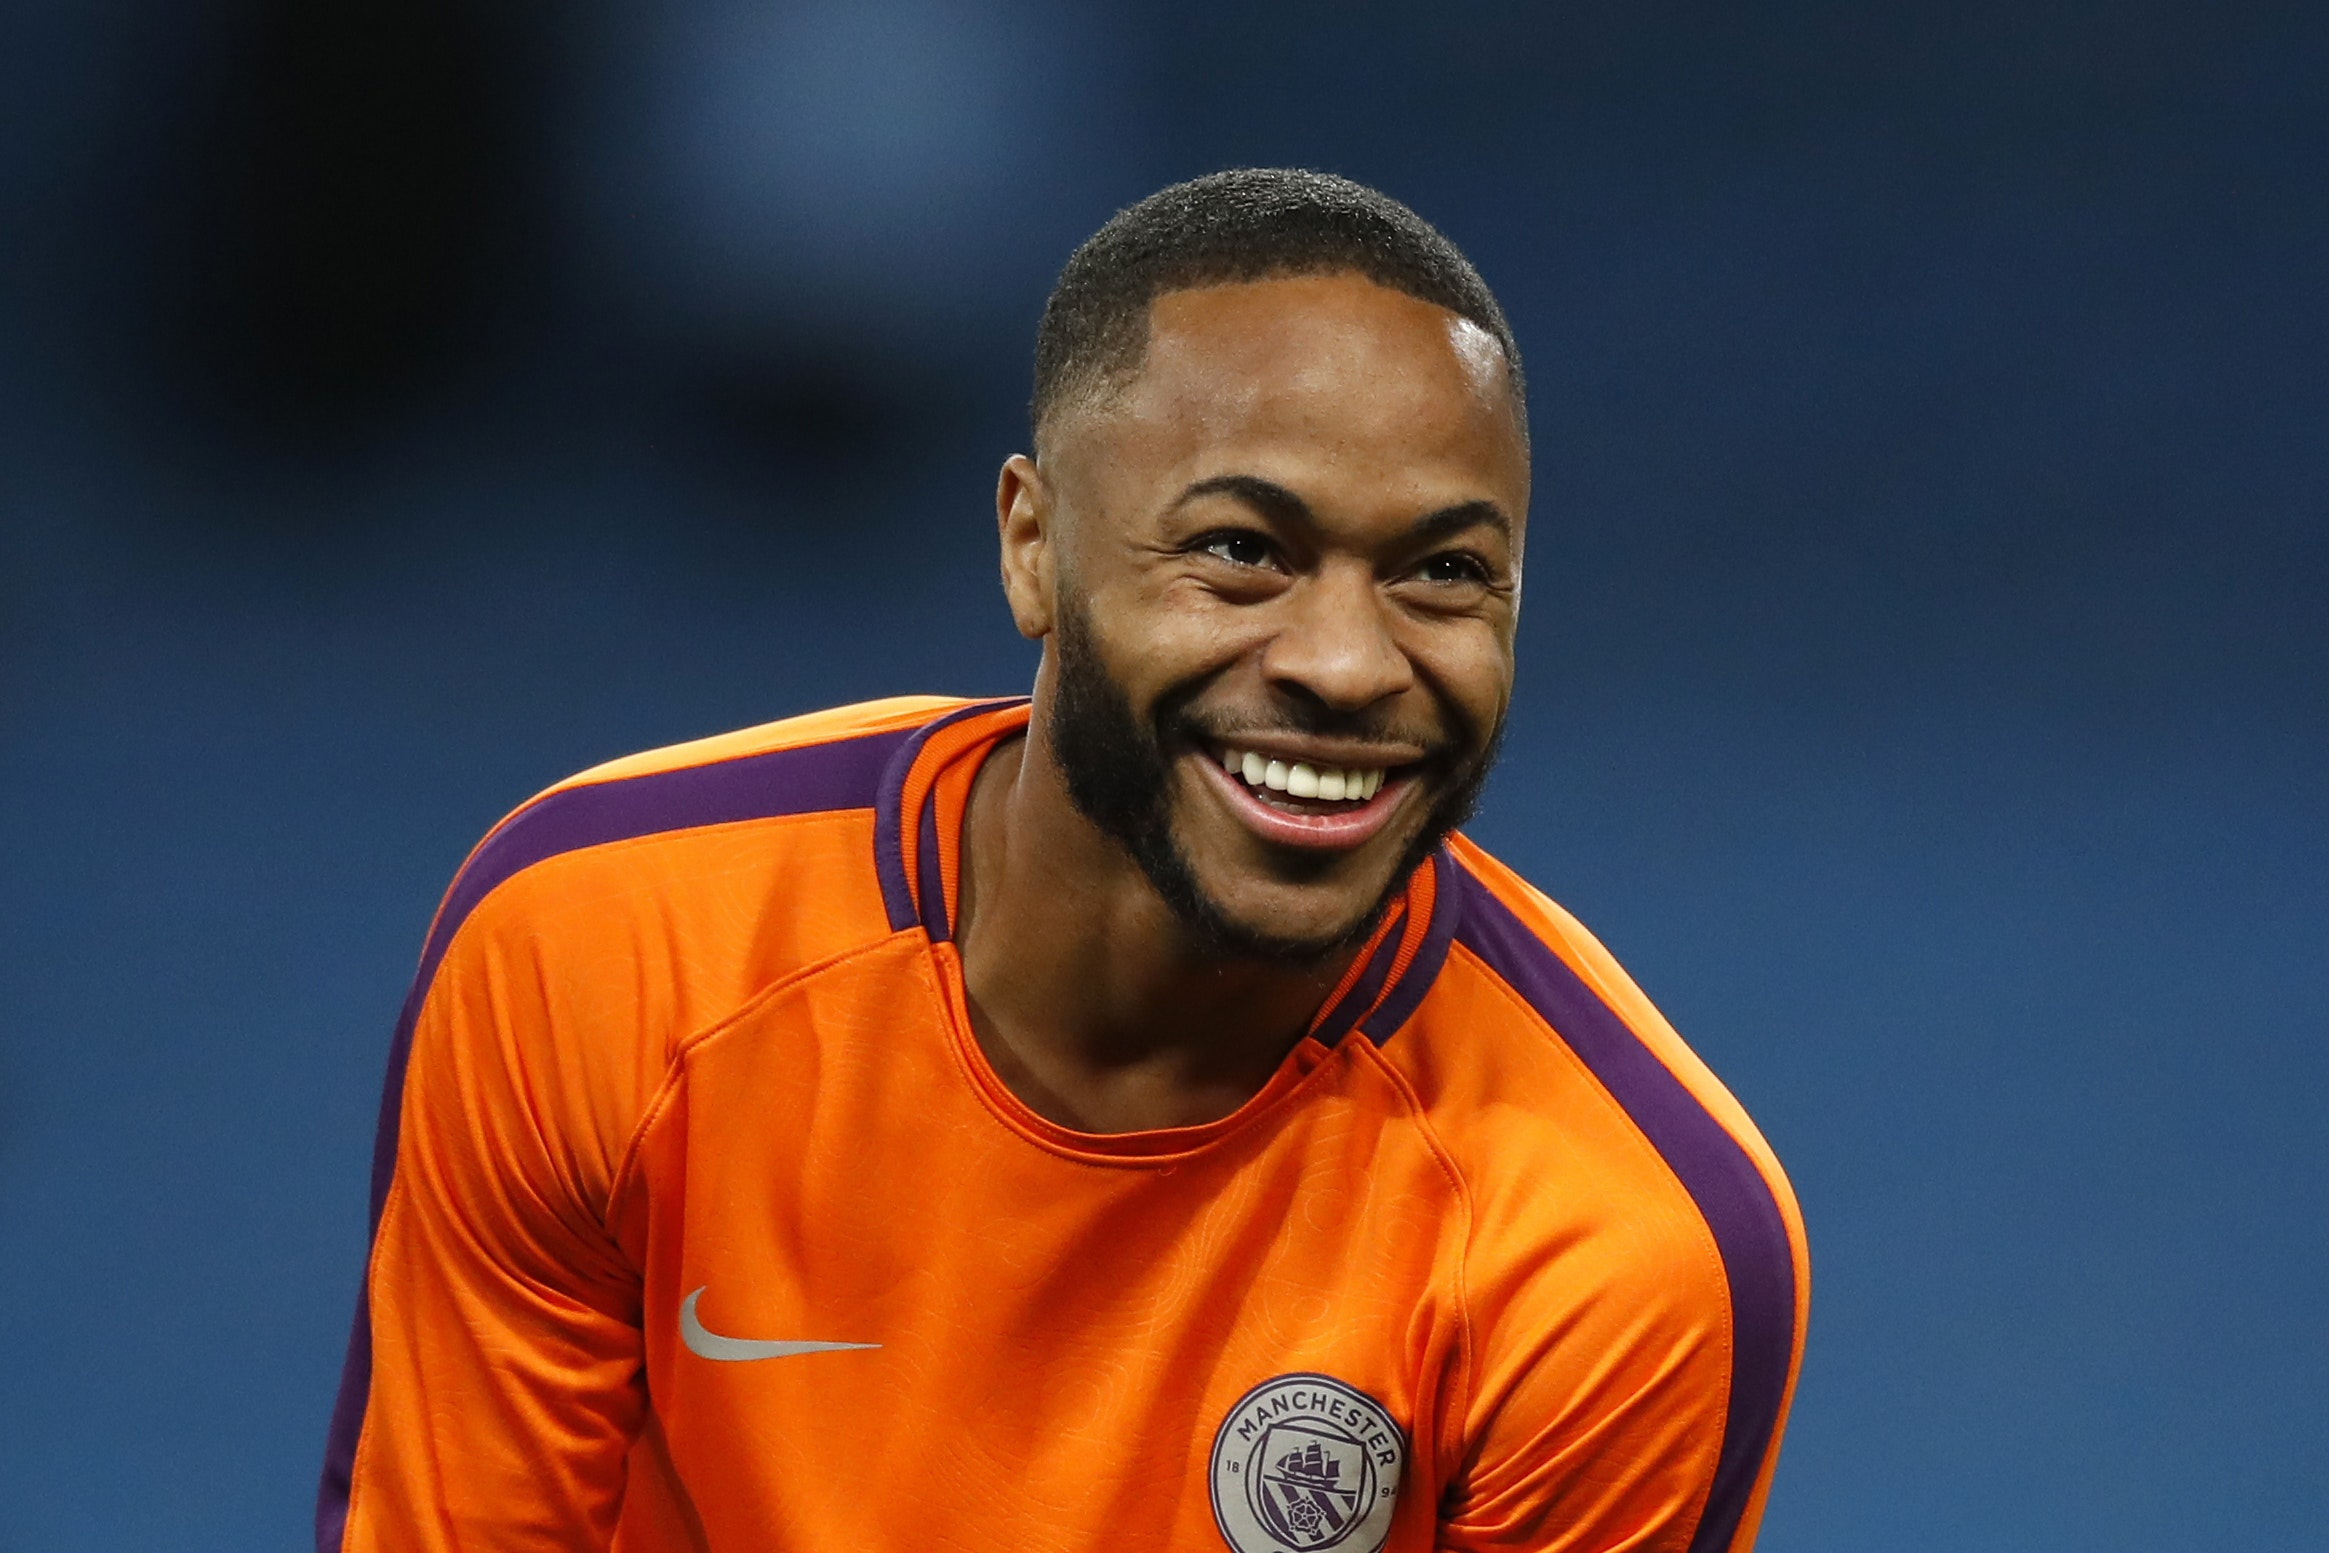 Raheem Sterling showed his support for Newport youngster Ethan Ross